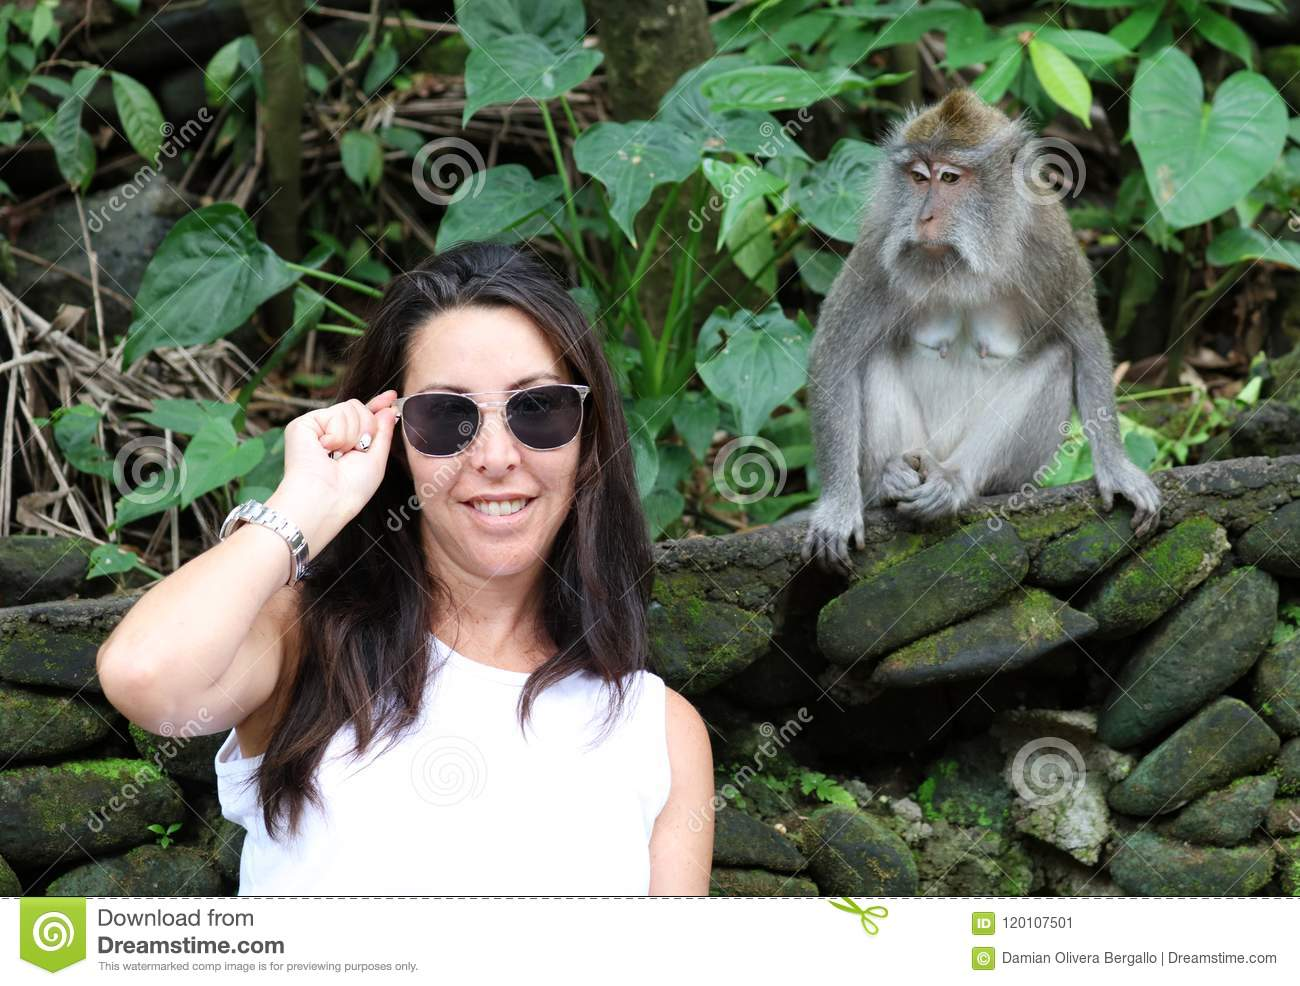 Beautiful girl playing with monkey at monkeys forest in Bali Indonesia, pretty woman with wild animal.